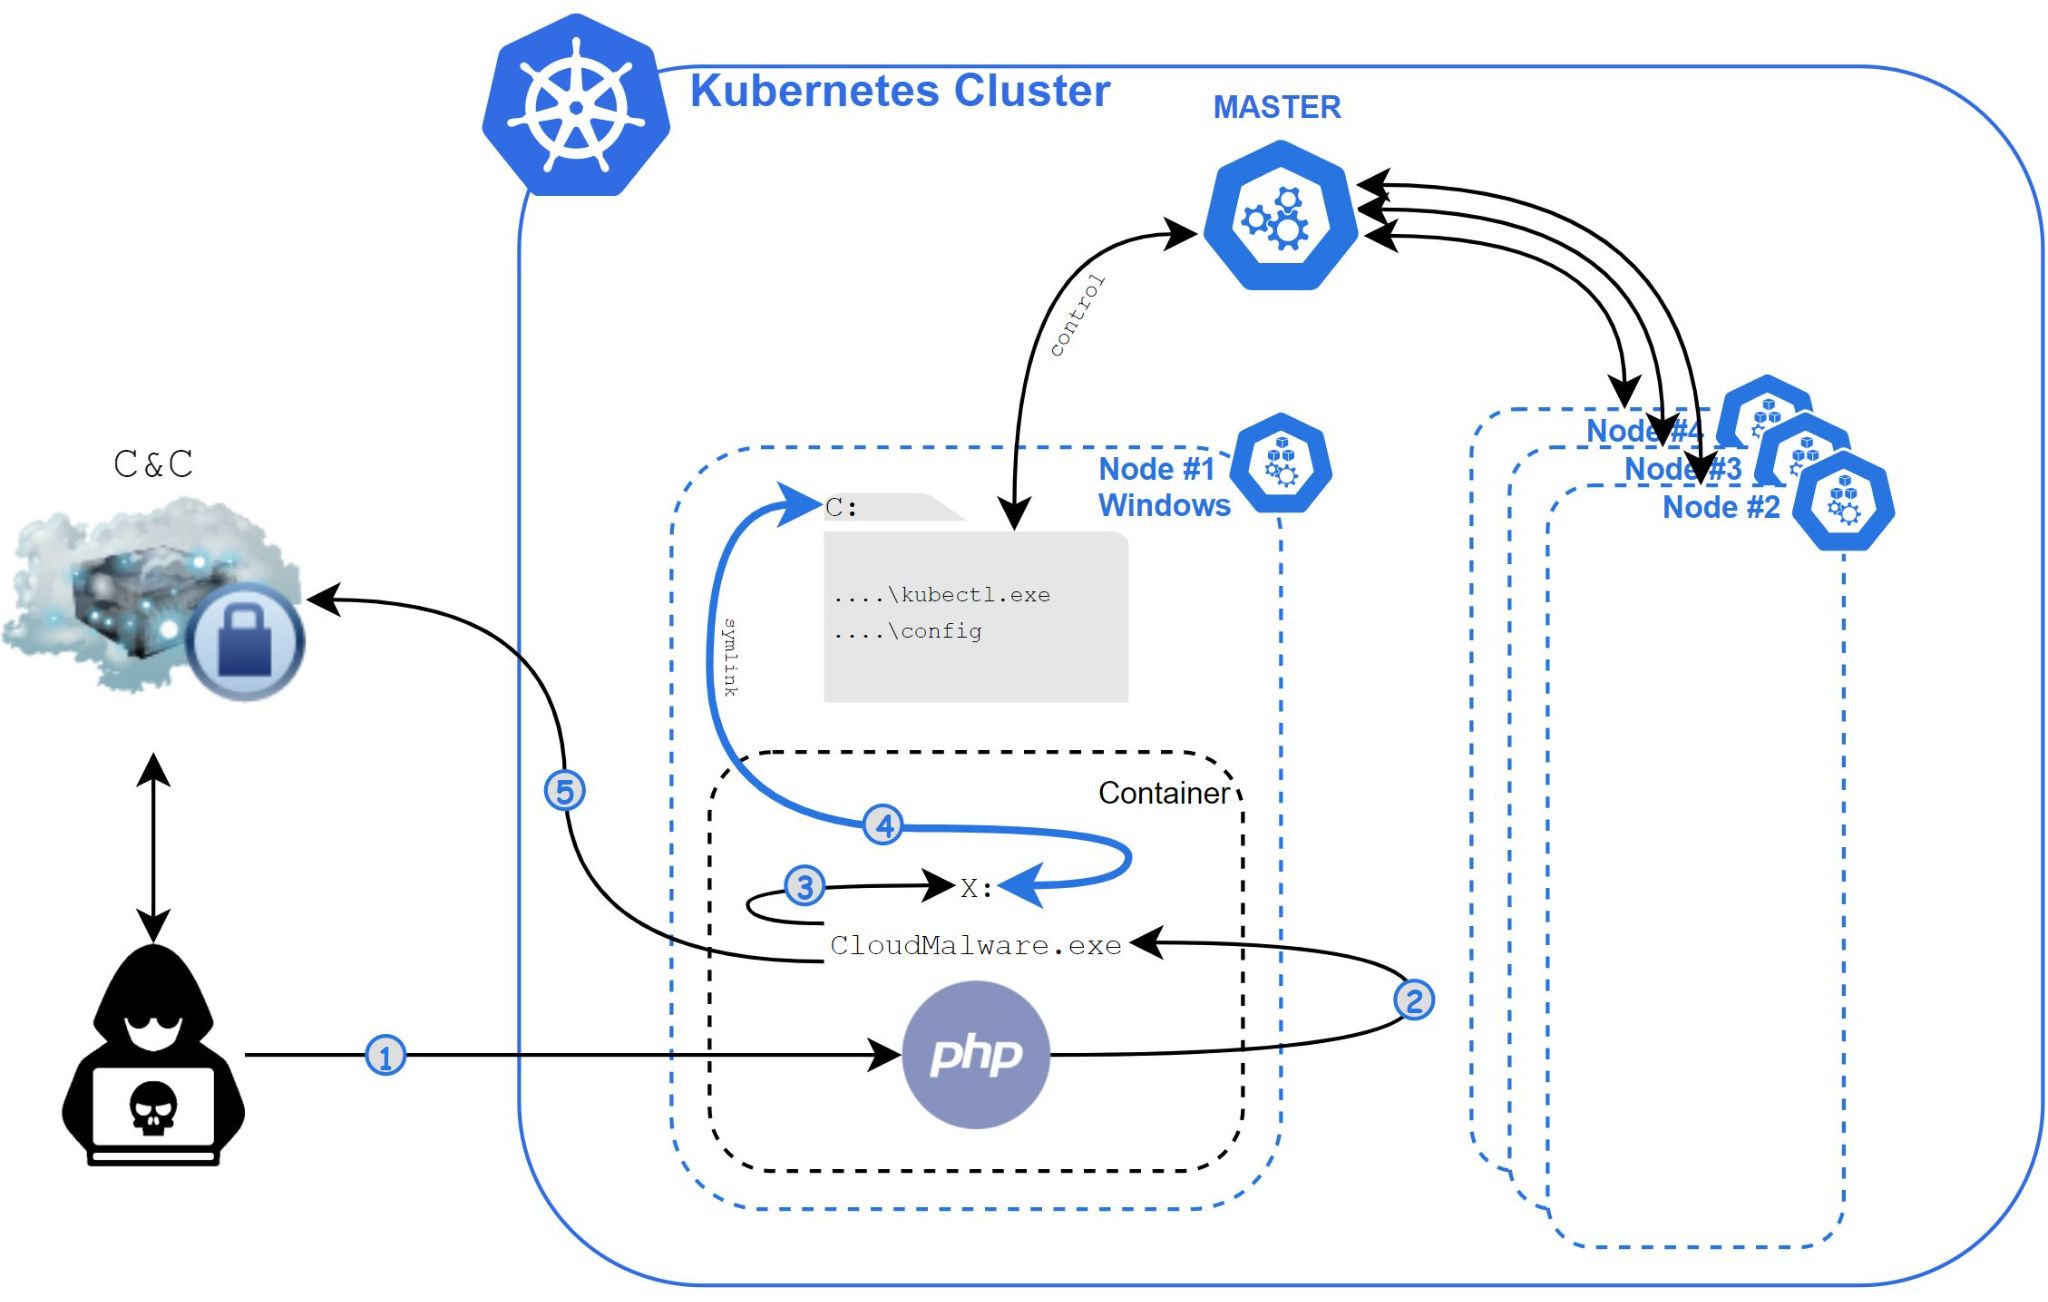 Siloscape, first known malware that drops a backdoor into Kubernetes clusters